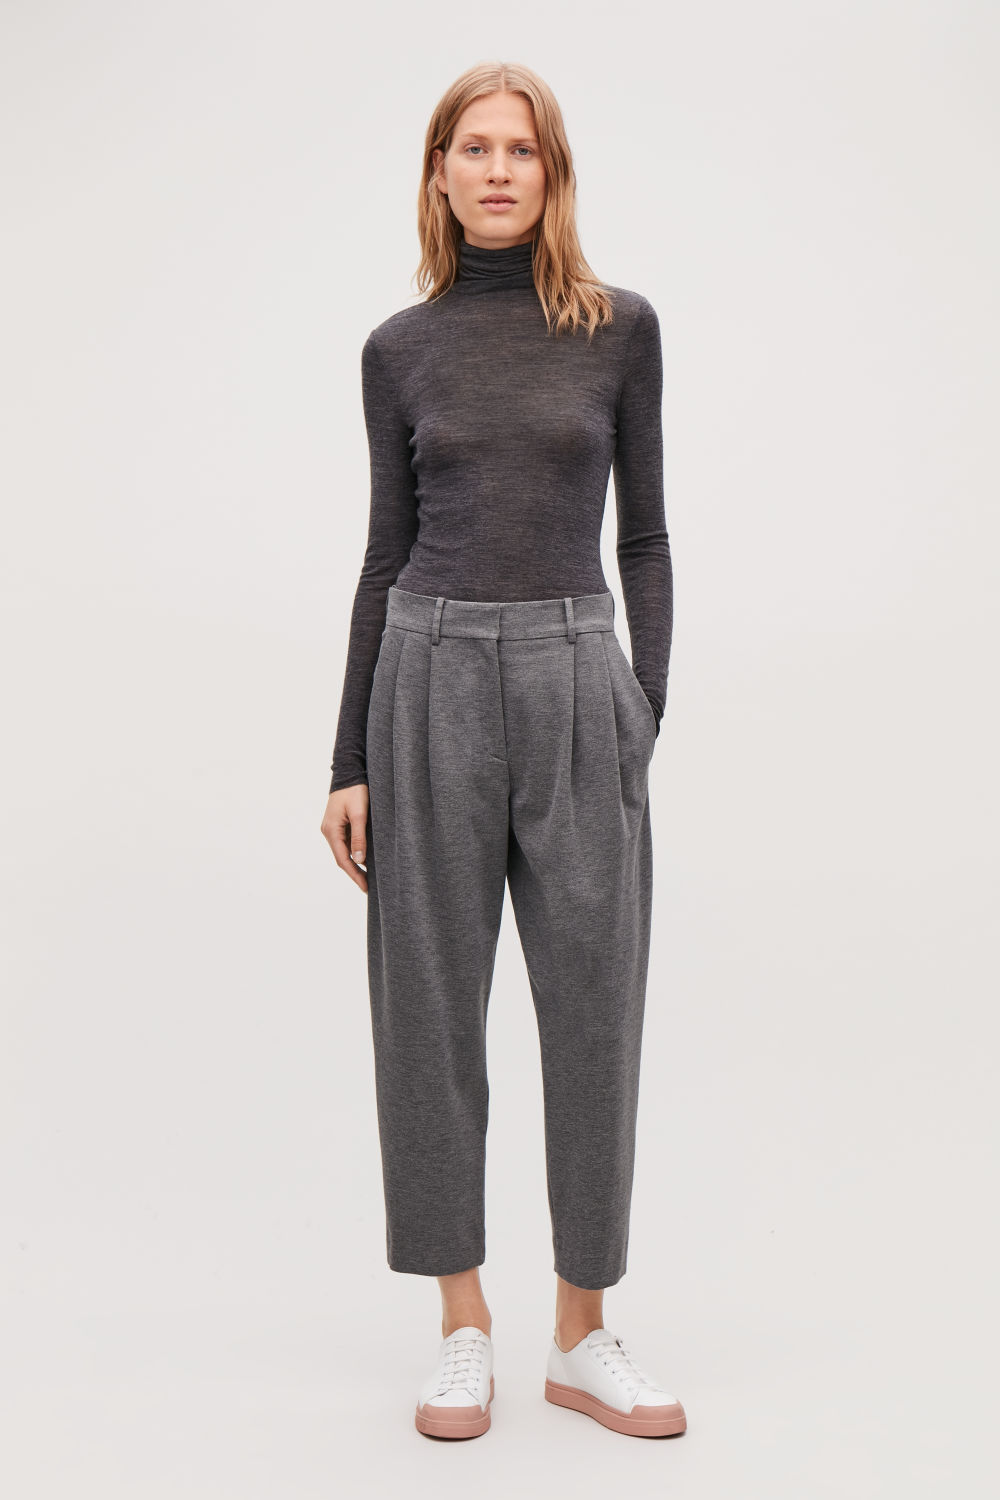 RELAXED JERSEY TROUSERS